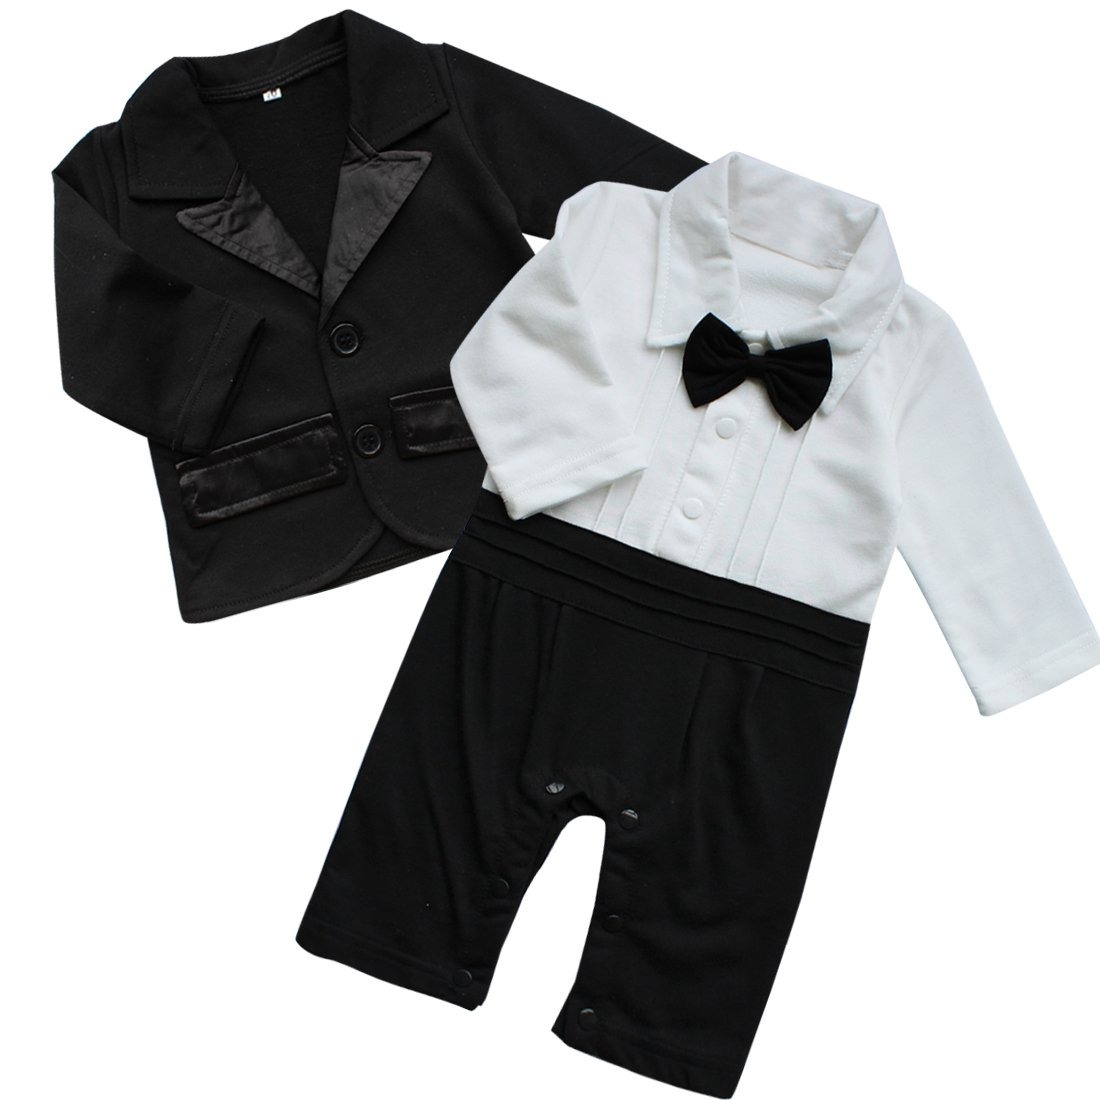 FEESHOW Baby Boy's 2Pcs Gentleman Wedding Formal Tuxedo Suit Romer Outfit Set Size 3-6 Months